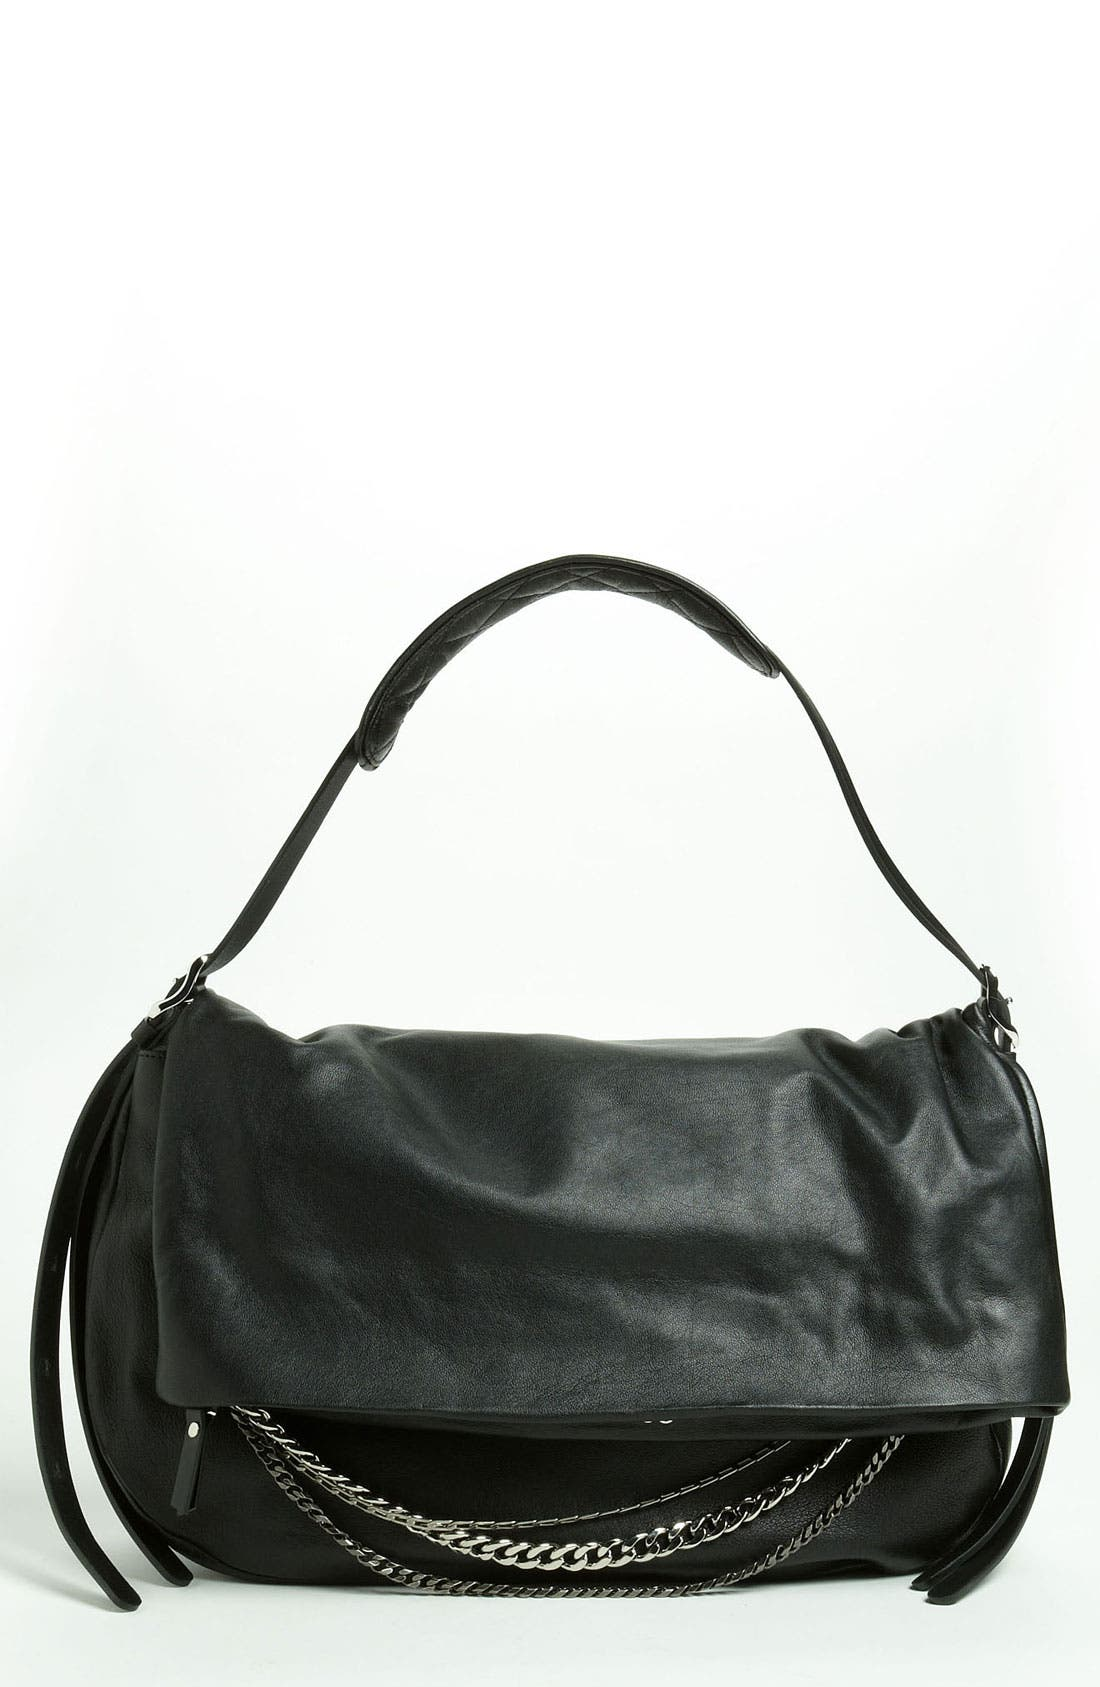 Main Image - Jimmy Choo 'Biker - Large' Leather Shoulder Bag